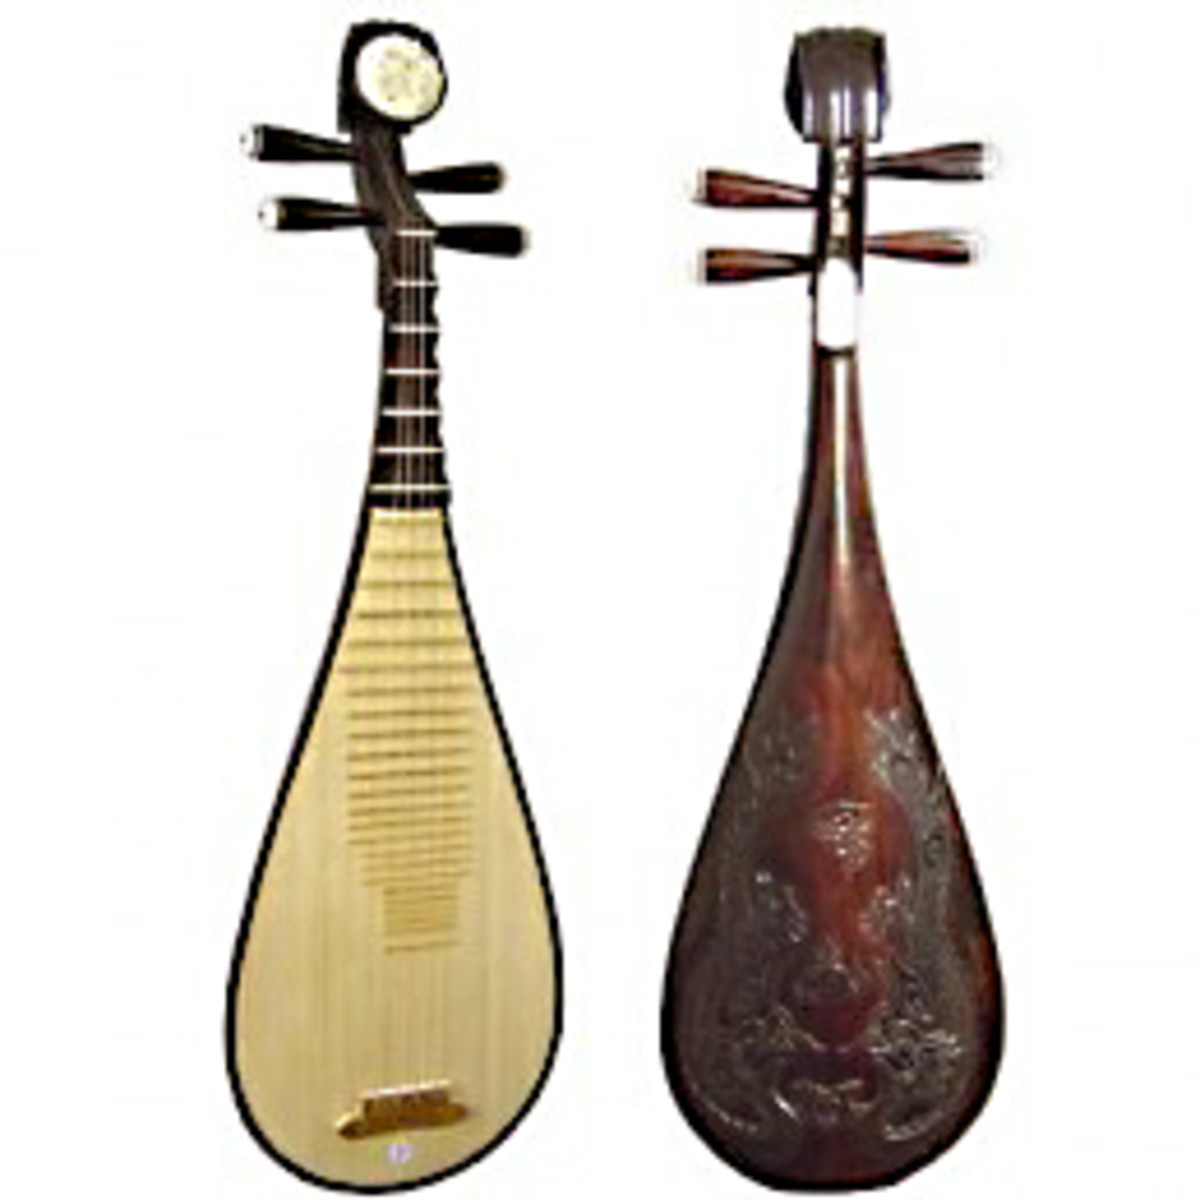 Traditional Chinese Pipa (from the hub, Traditional Chinese Musical Instruments)